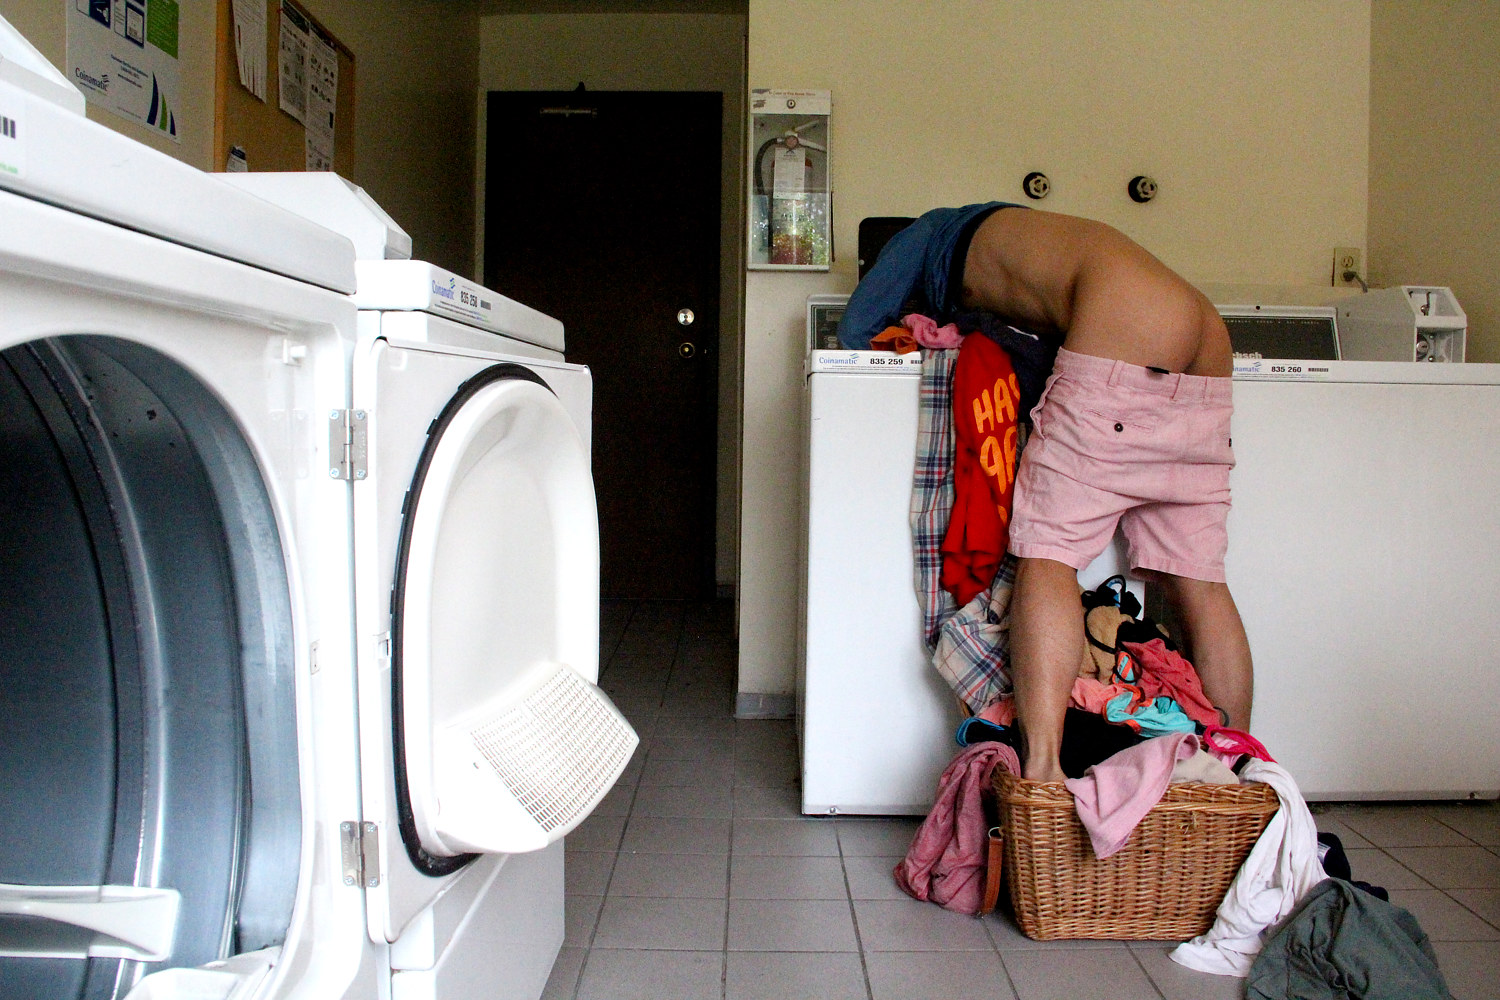 Photography Redemption On Laundry Day - Washing by Sidi Chen